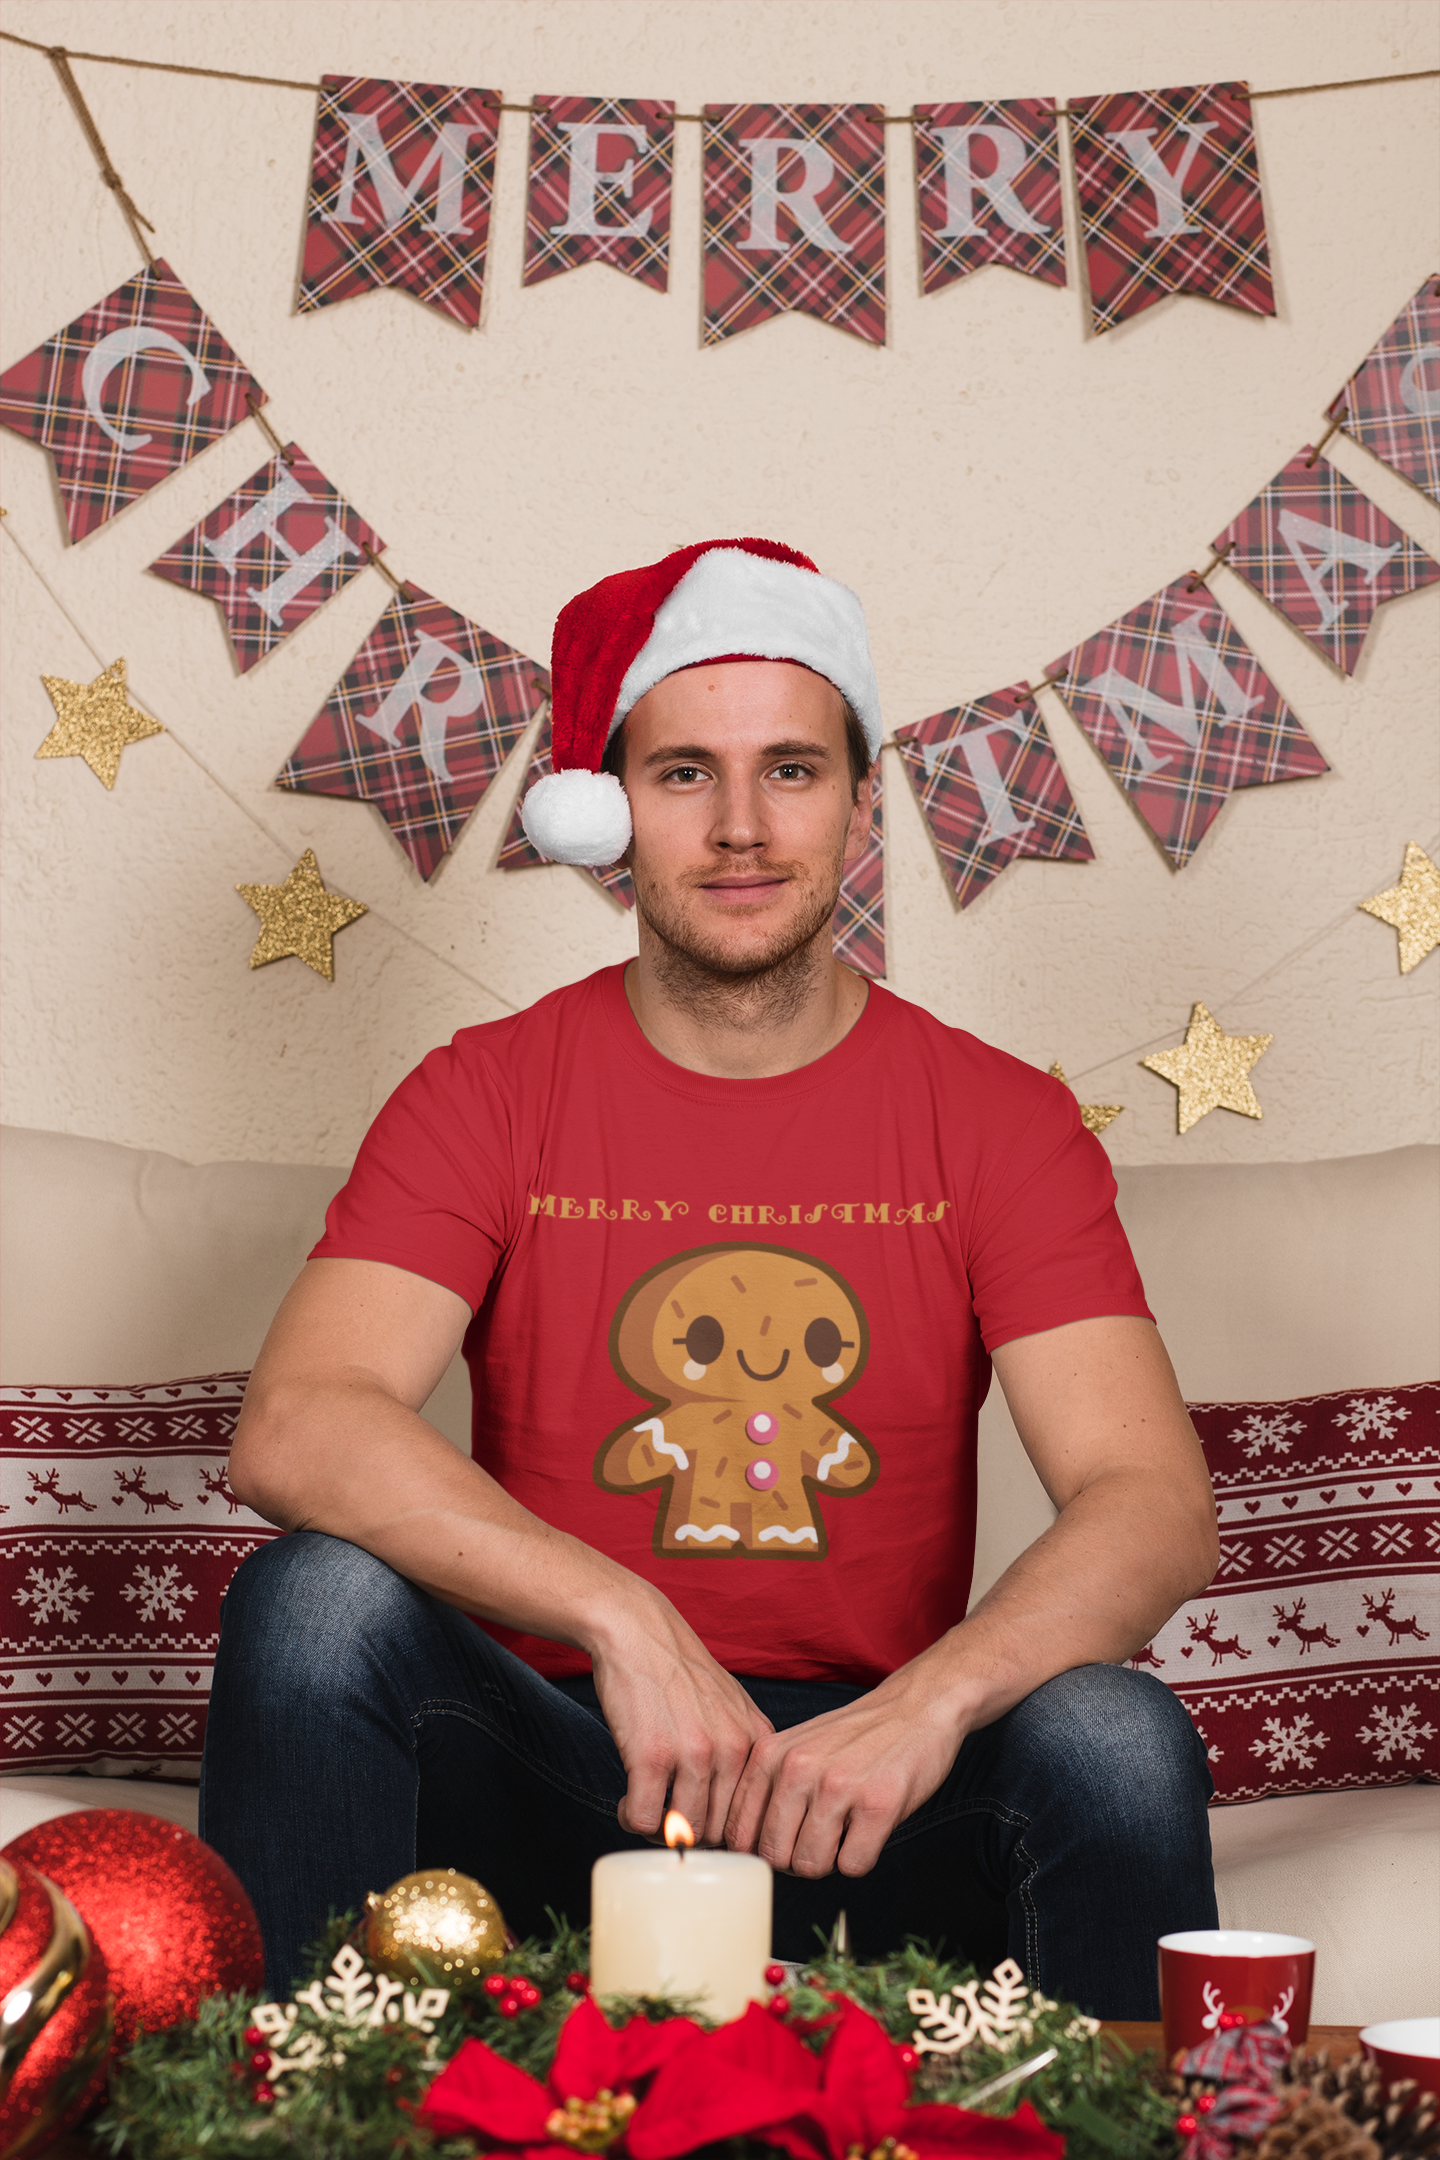 Cute Gingerbread Man Christmas Apparel Cookie Lovers Gift T-Shirt